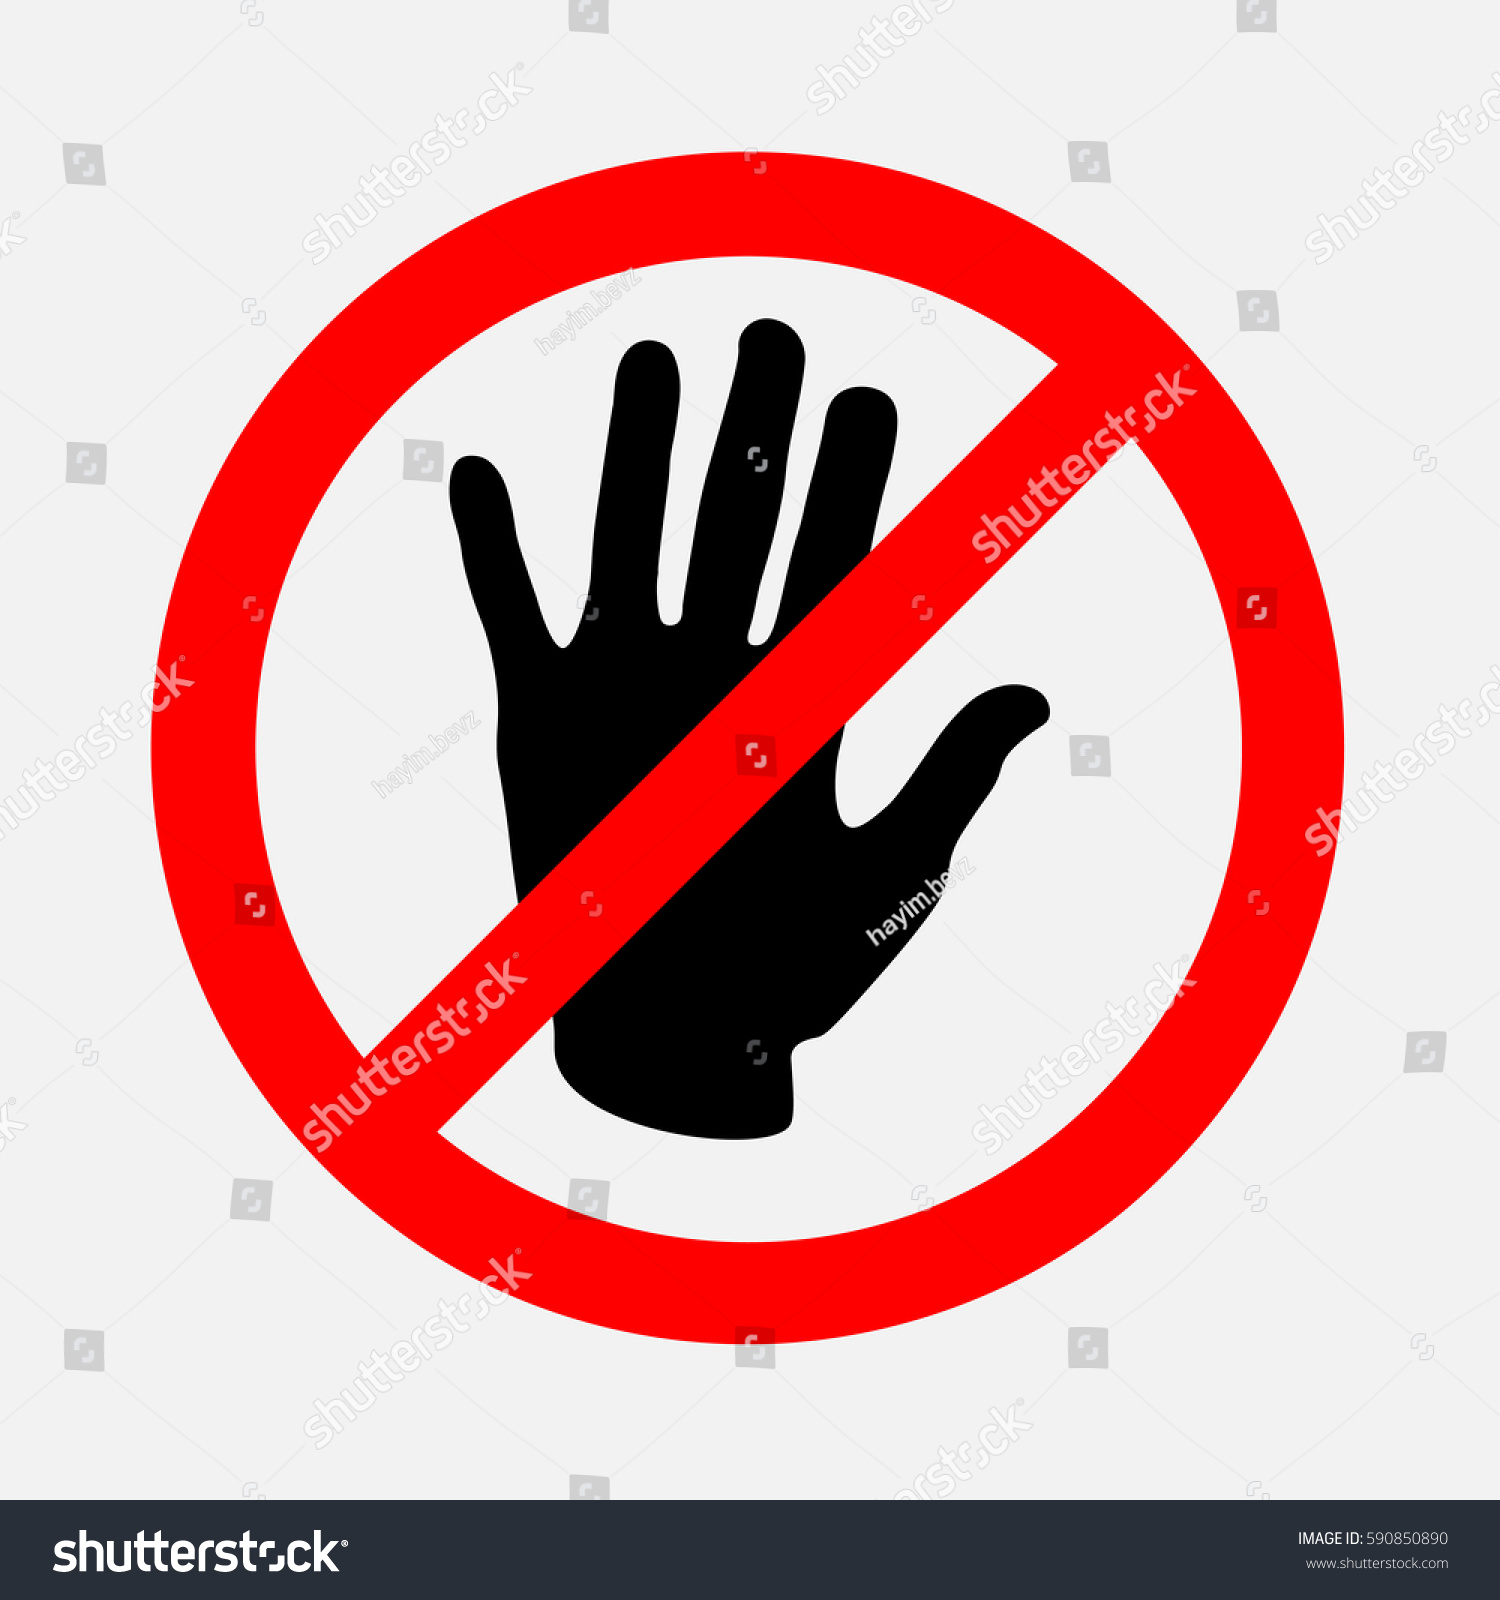 Sign Ban Touching Hand Stock Vector 590850890  Shutterstock. Electric Service Providers Dallas Tx. Friedrich Air Conditioner Repair. New Orleans Saints Mailing Address. Burns Funeral Home Crown Point In. Massage School South Florida. Stephen King Inspiration Postage Meter Canada. Satellite Dish Internet Reviews. Online Graduate Programs Education